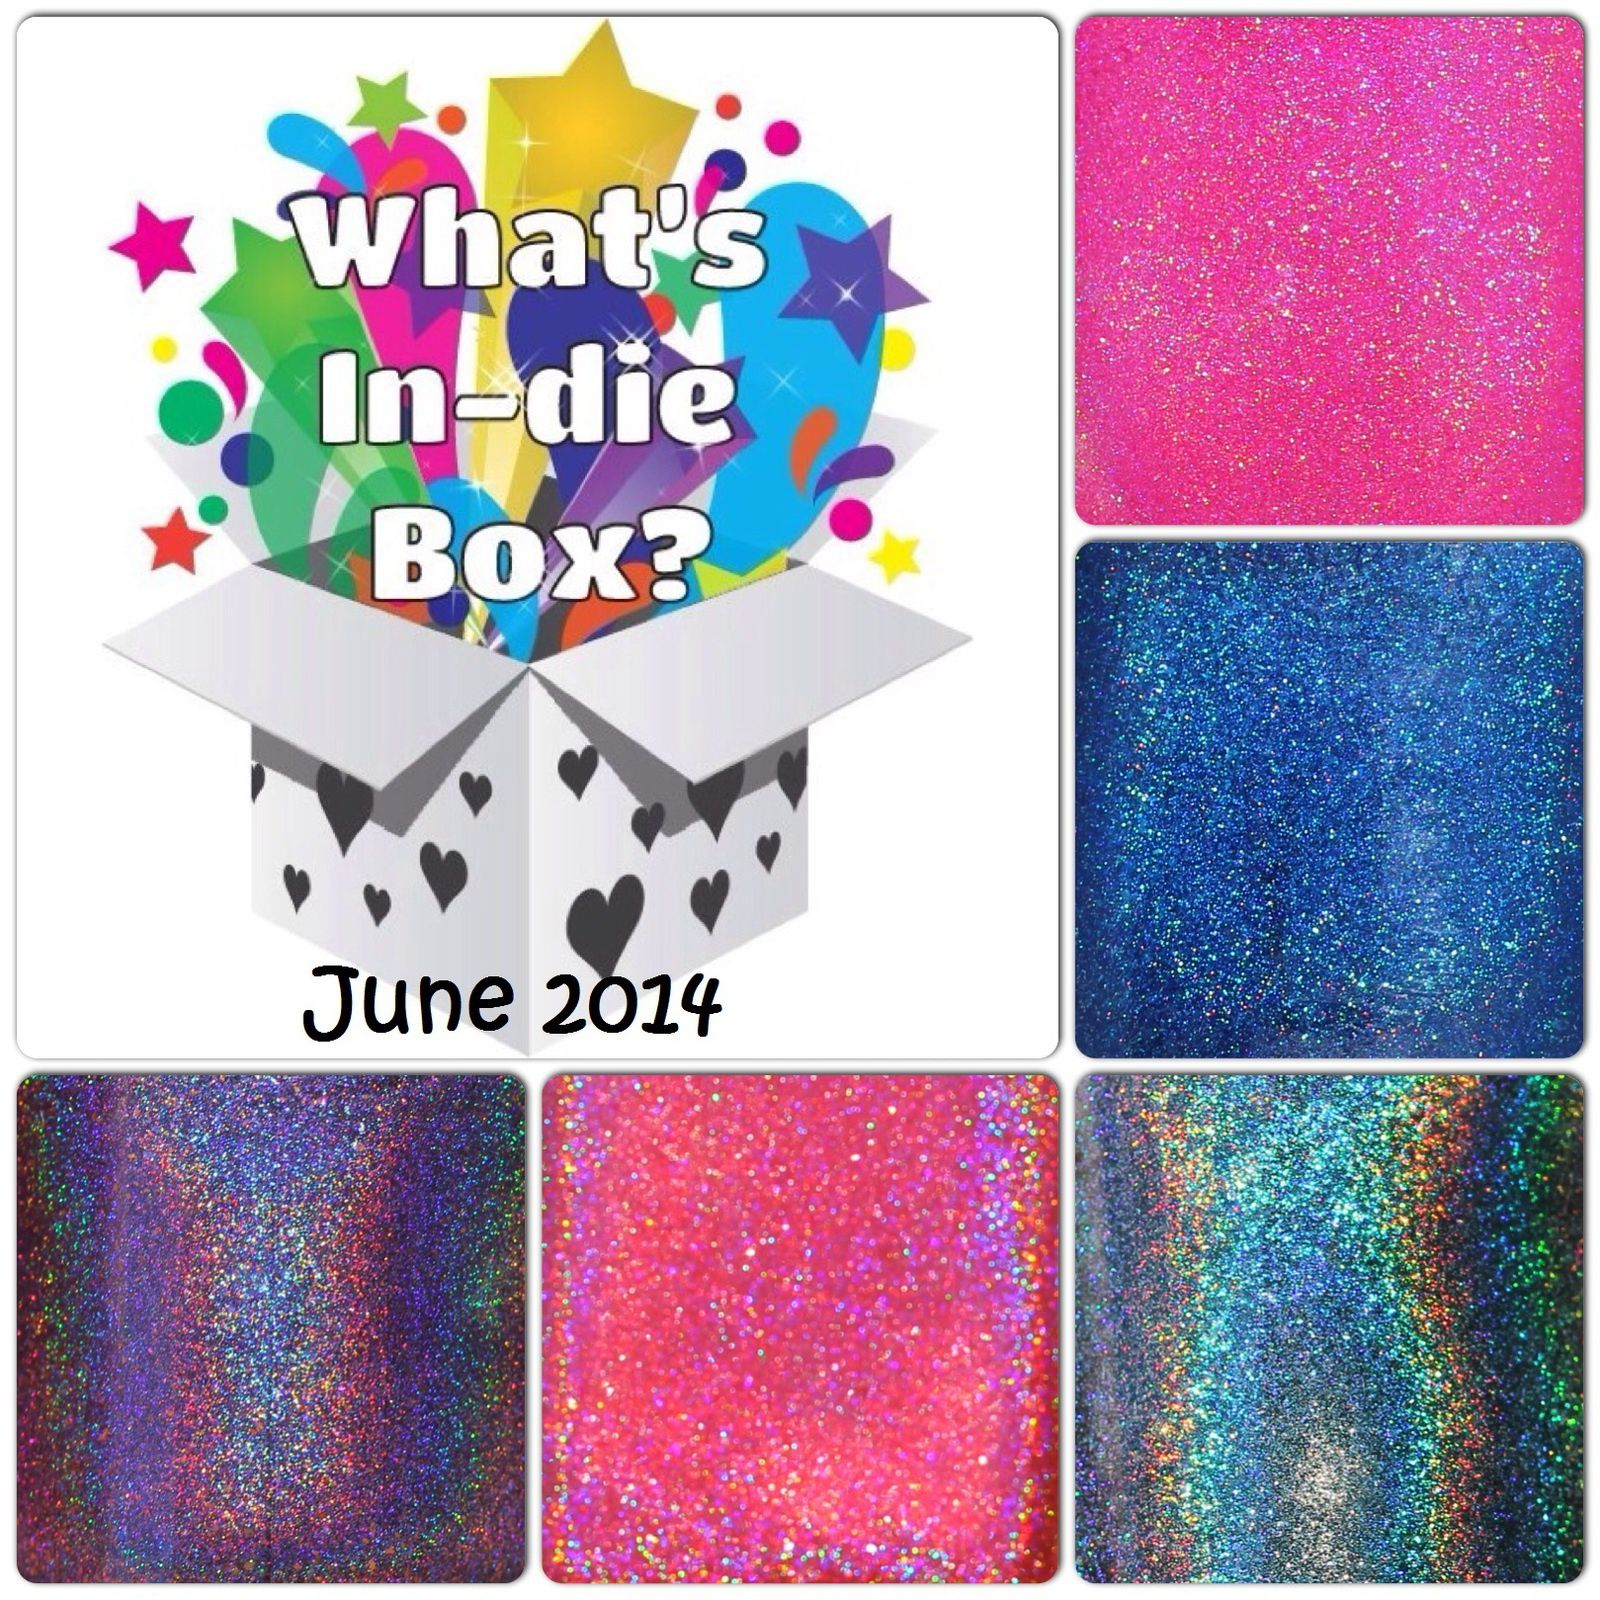 What's Indie Box June 2014 - 1st Anniversary Holo - Polish macros & inspiration pictures.